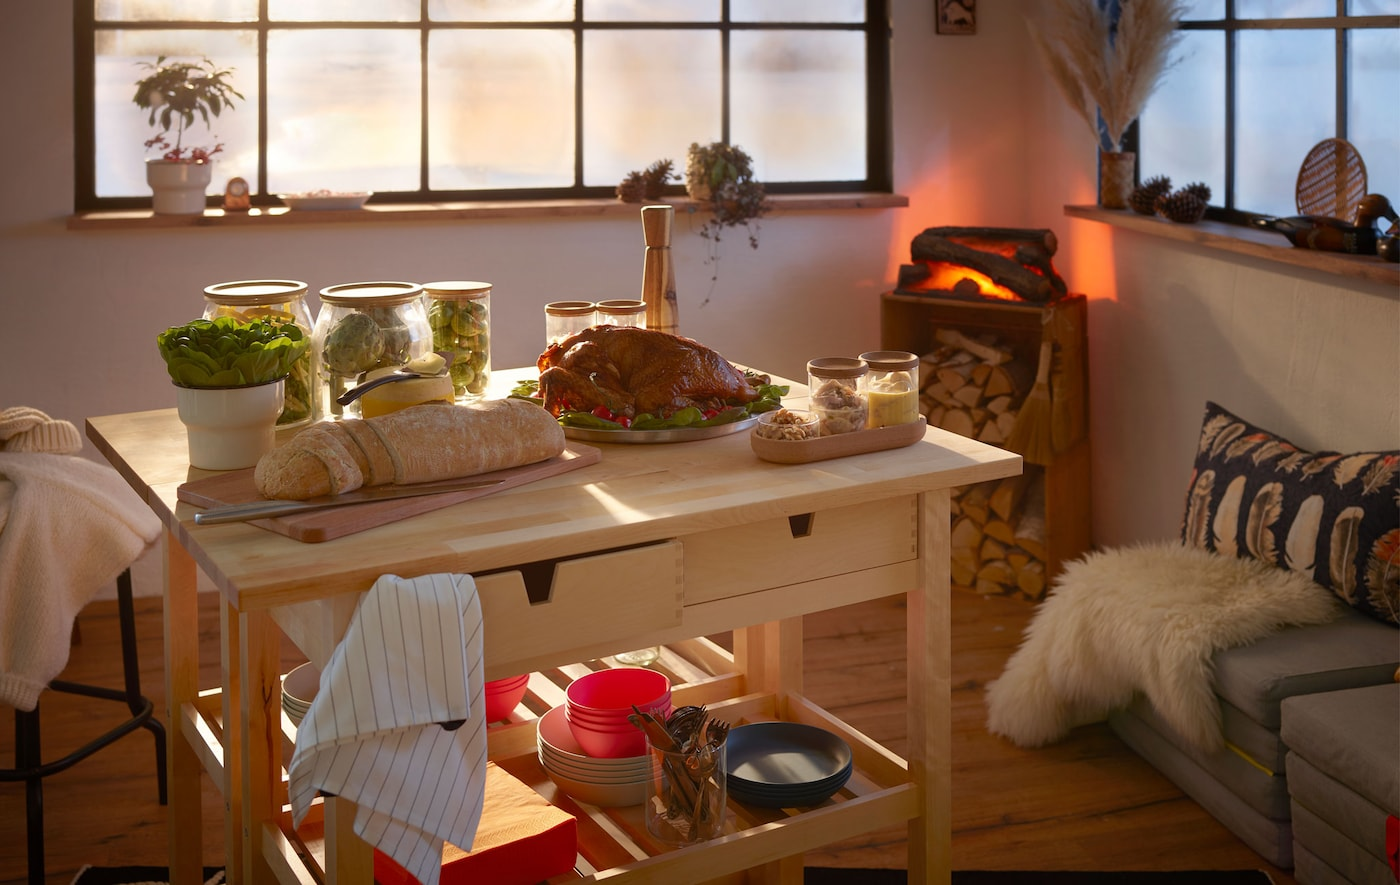 Log-cabin style interior with a small but festive buffet set on double kitchen trolleys; fake fireplace in the corner.